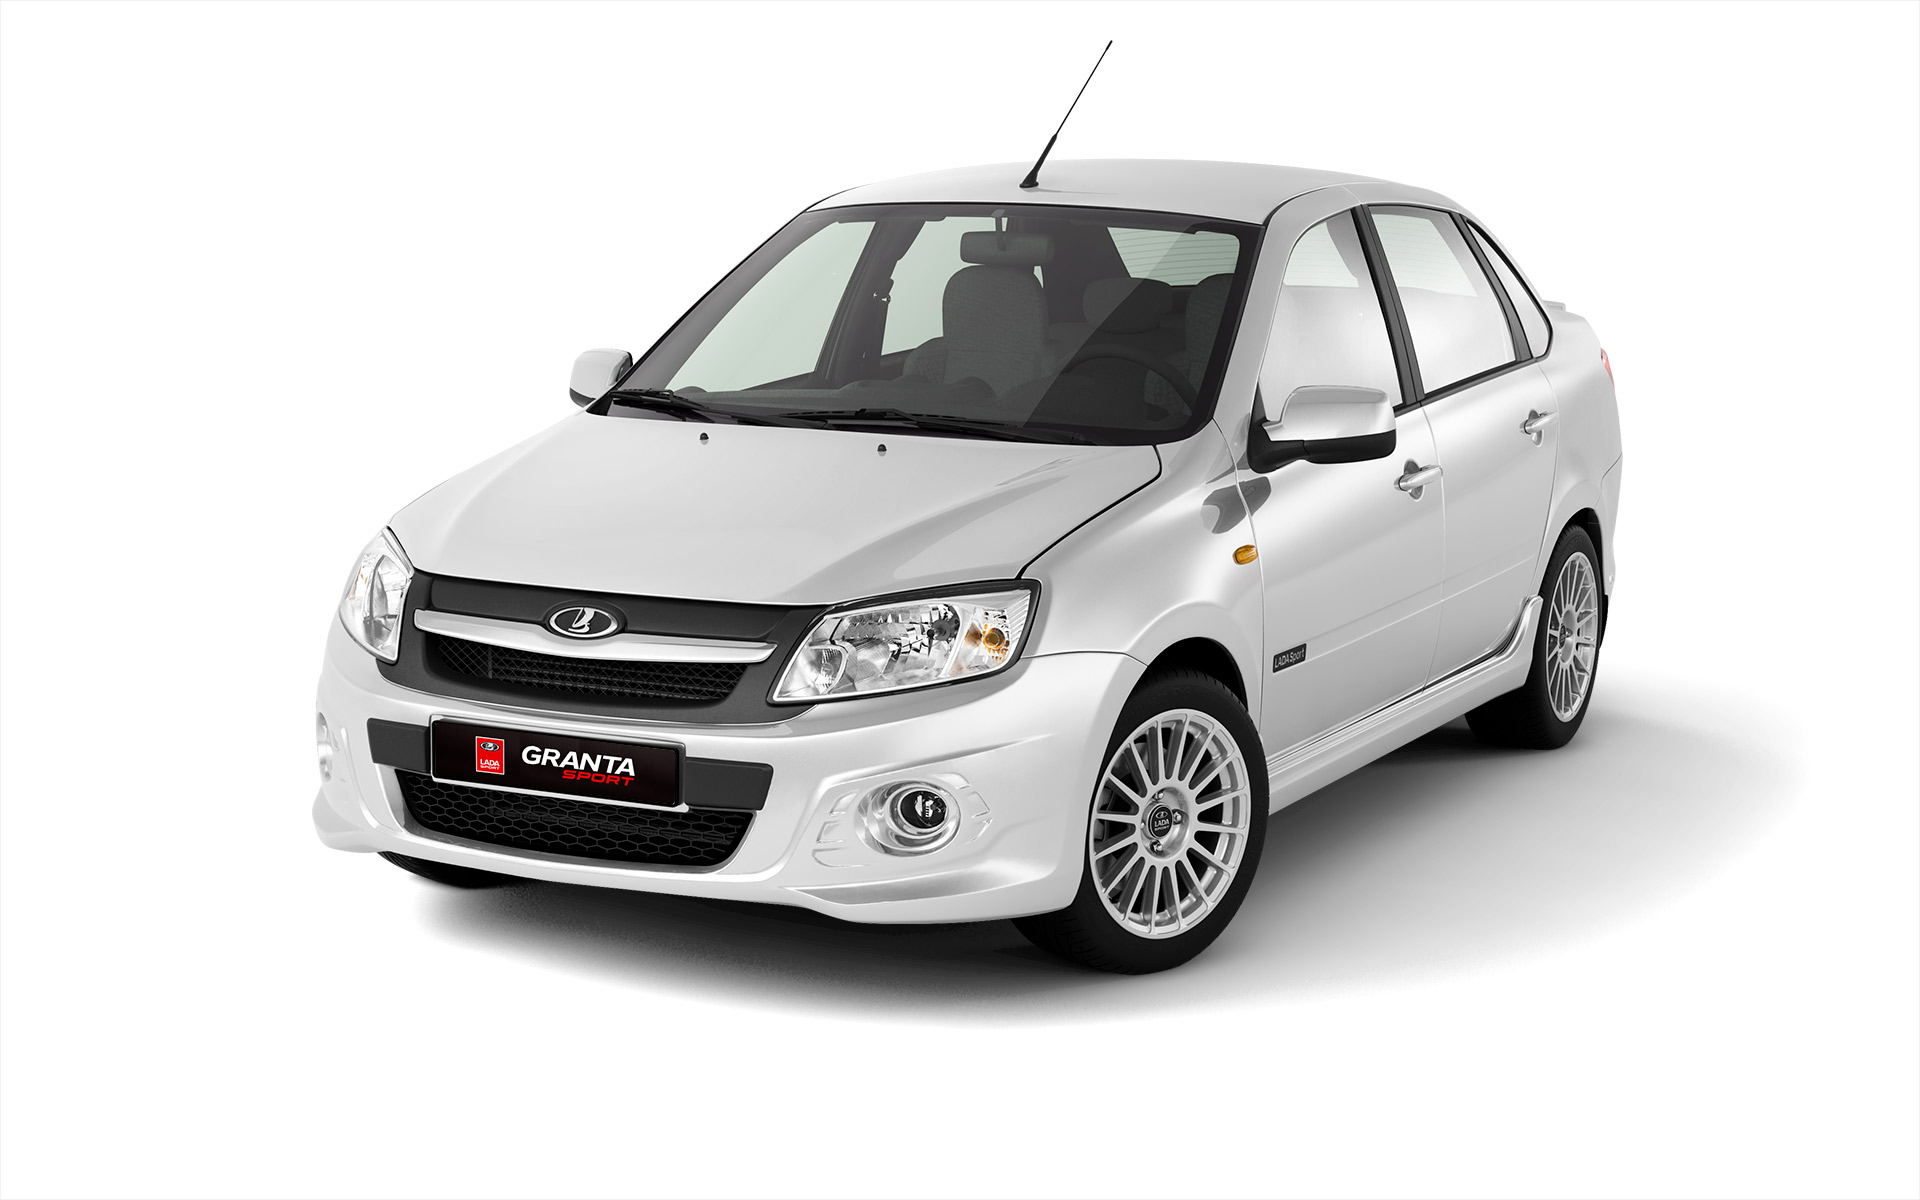 Lada Kalina hatchback: reviews of owners, price 45